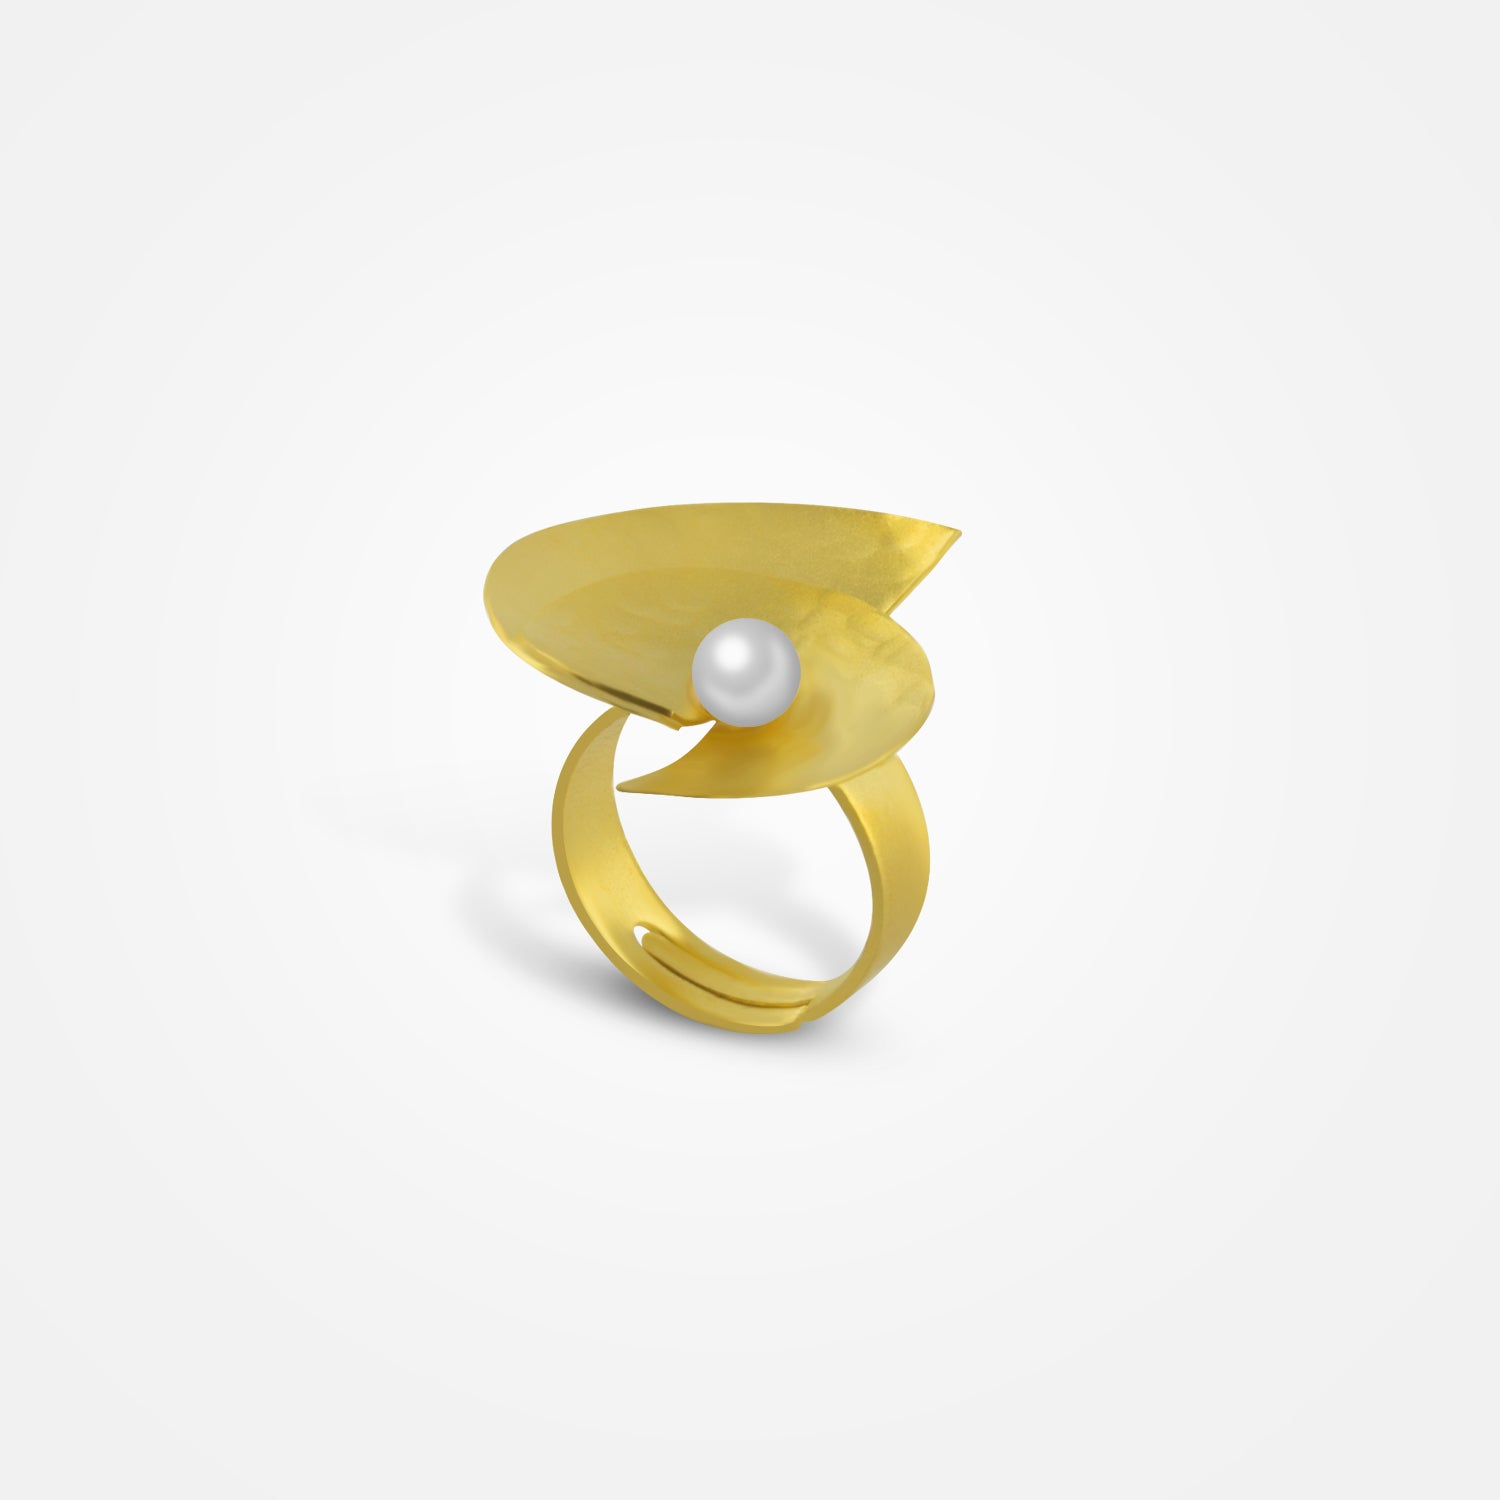 Handcrafted Golden Half-moon Pearl Ring by FO.BE